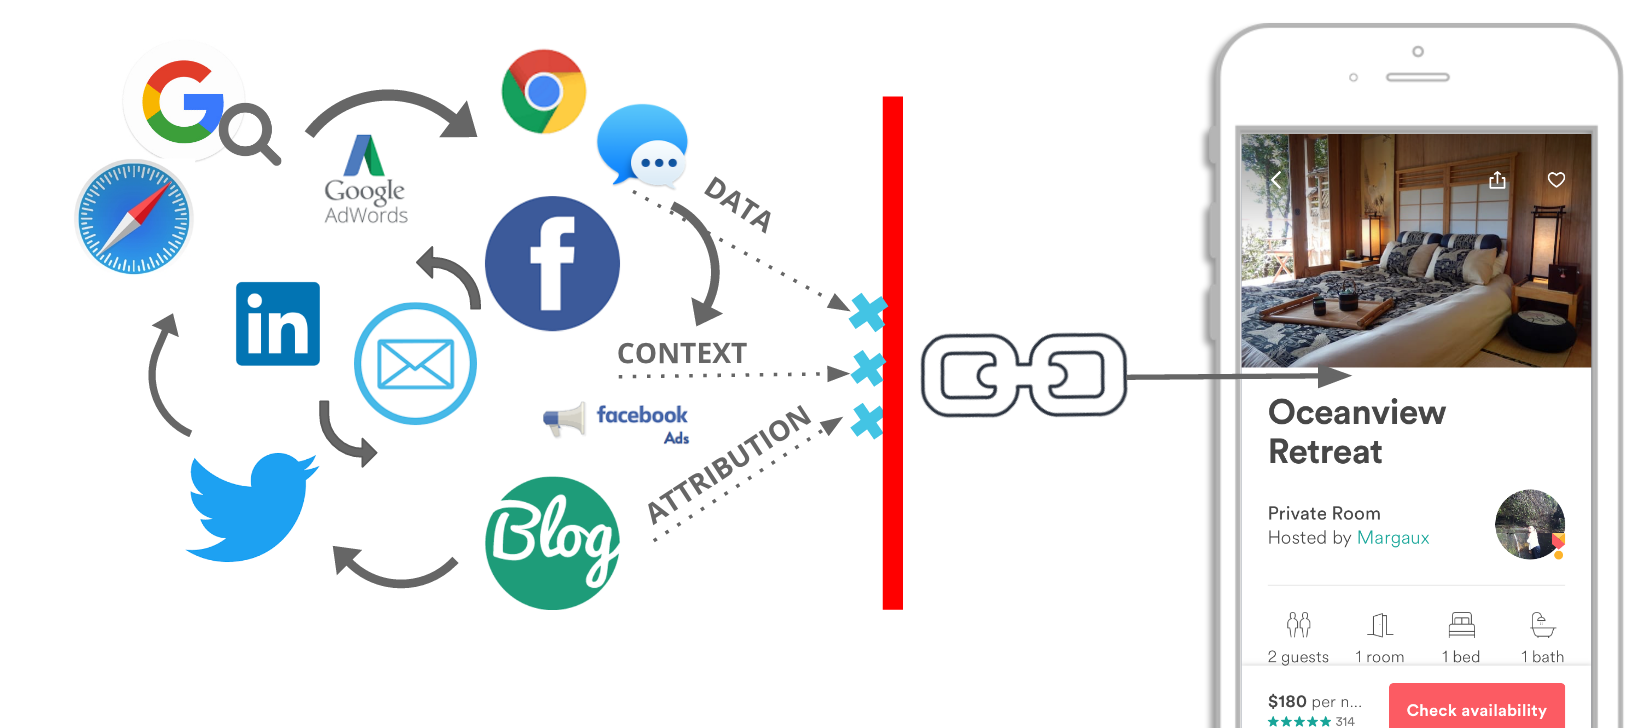 Deep Linking is Not Enough - By Alex Bauer